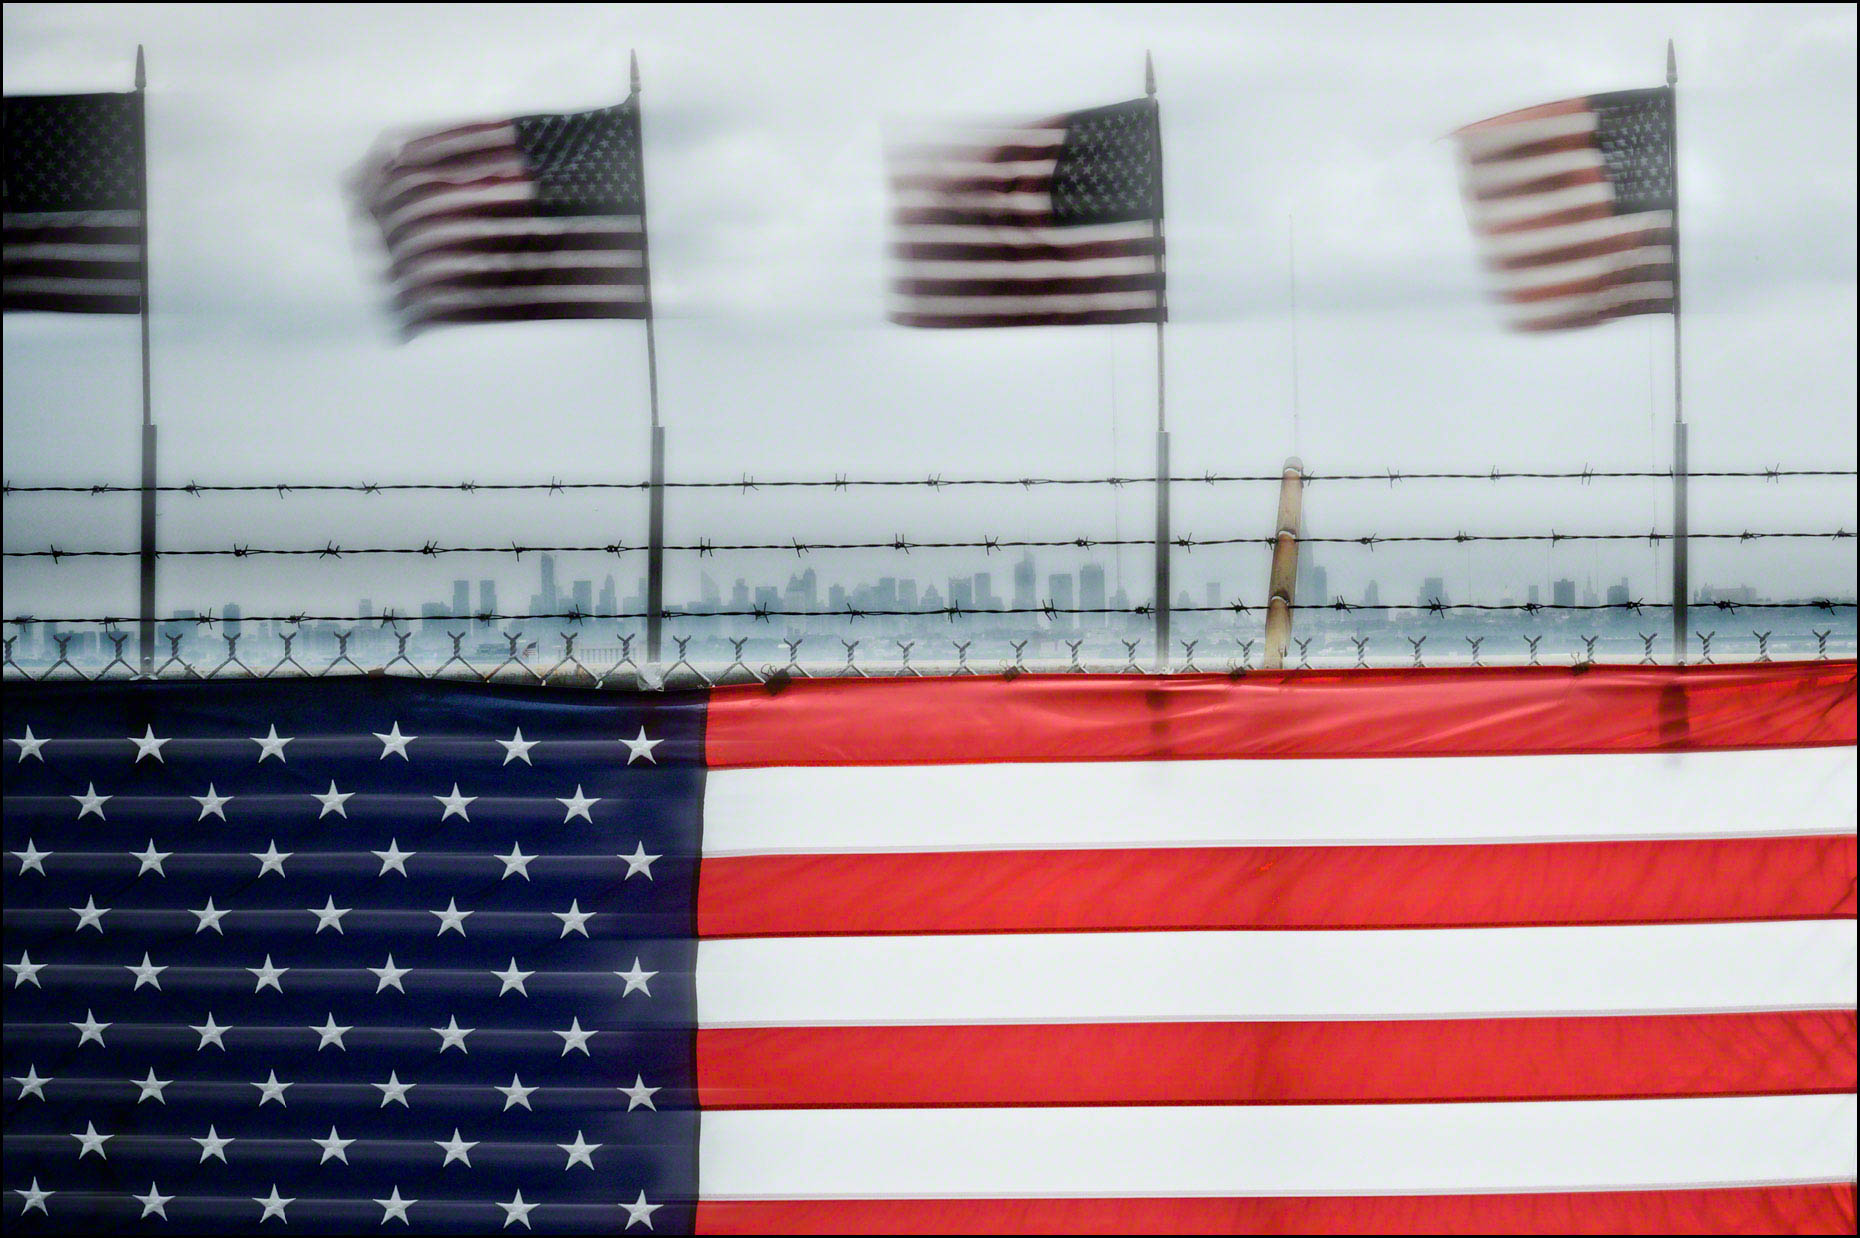 FritzImages | Travel and Outdoor Digital Images | image name = EFI 20130727 0550 NJ 911 New Jersey IO